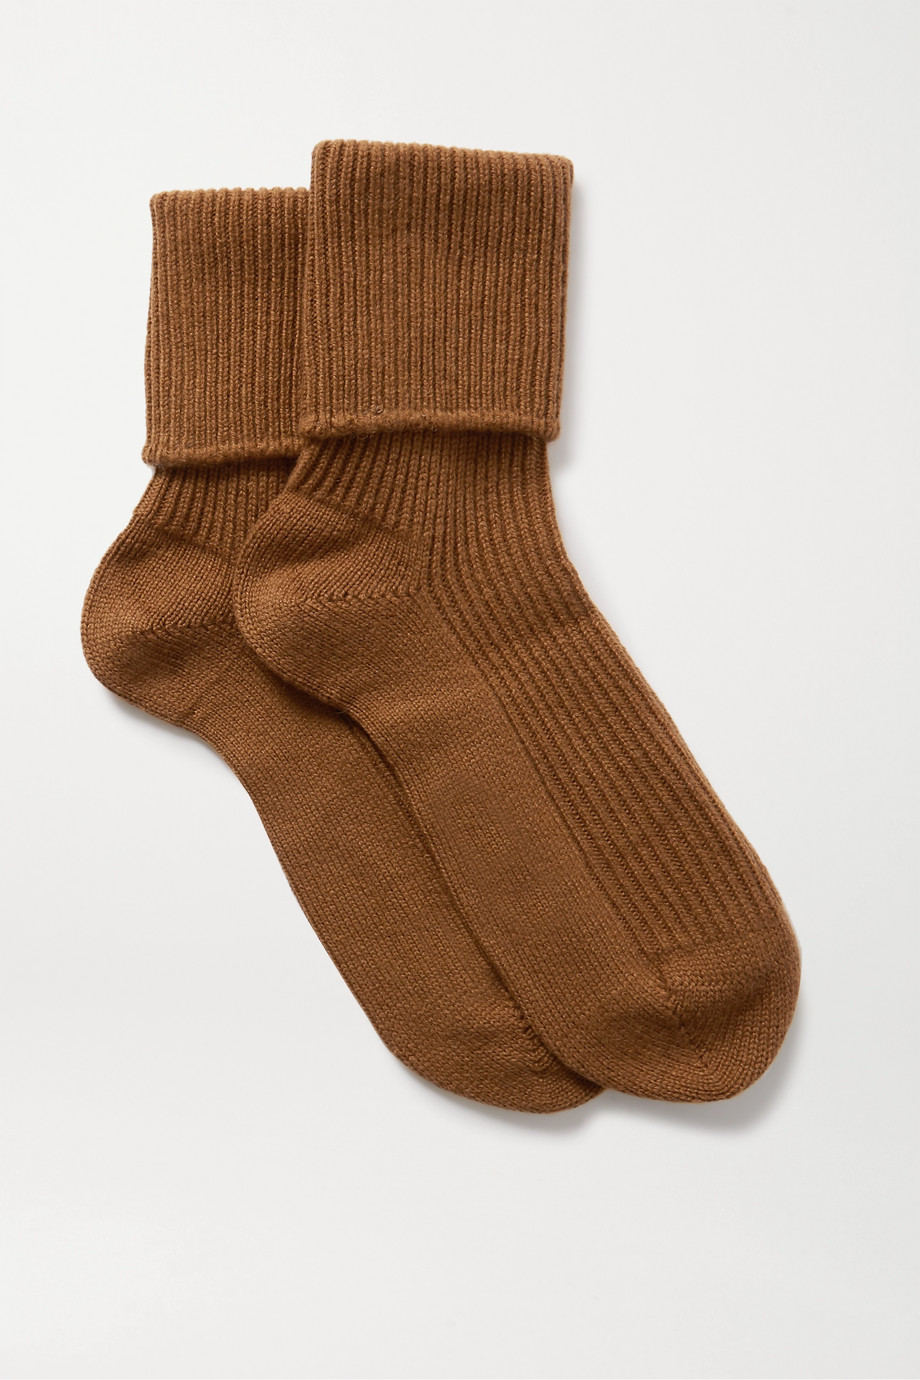 JOHNSTONS OF ELGIN + NET SUSTAIN ribbed cashmere socks